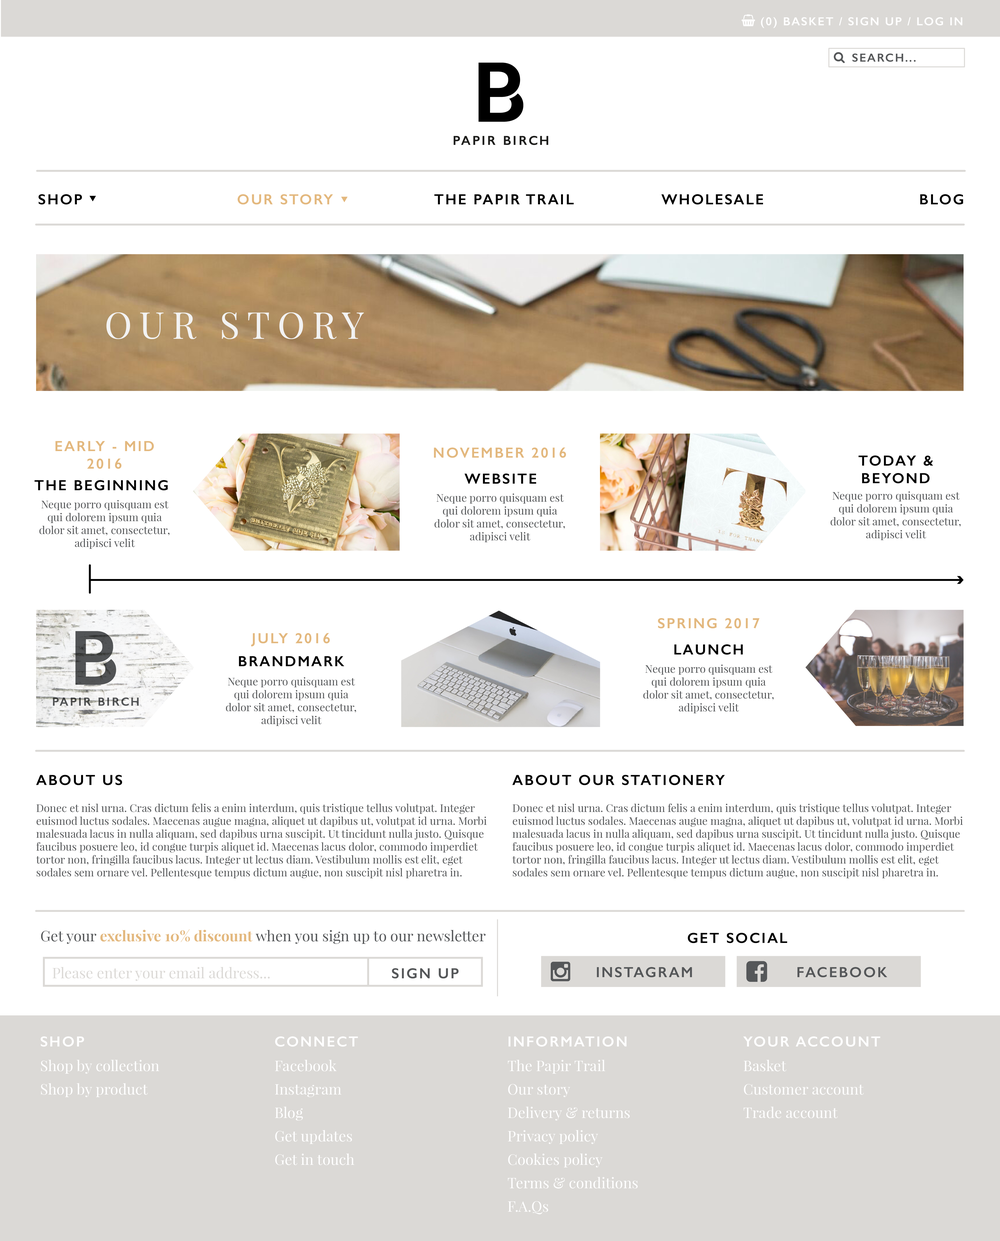 PapirBirch-OurStory-1116-01.png